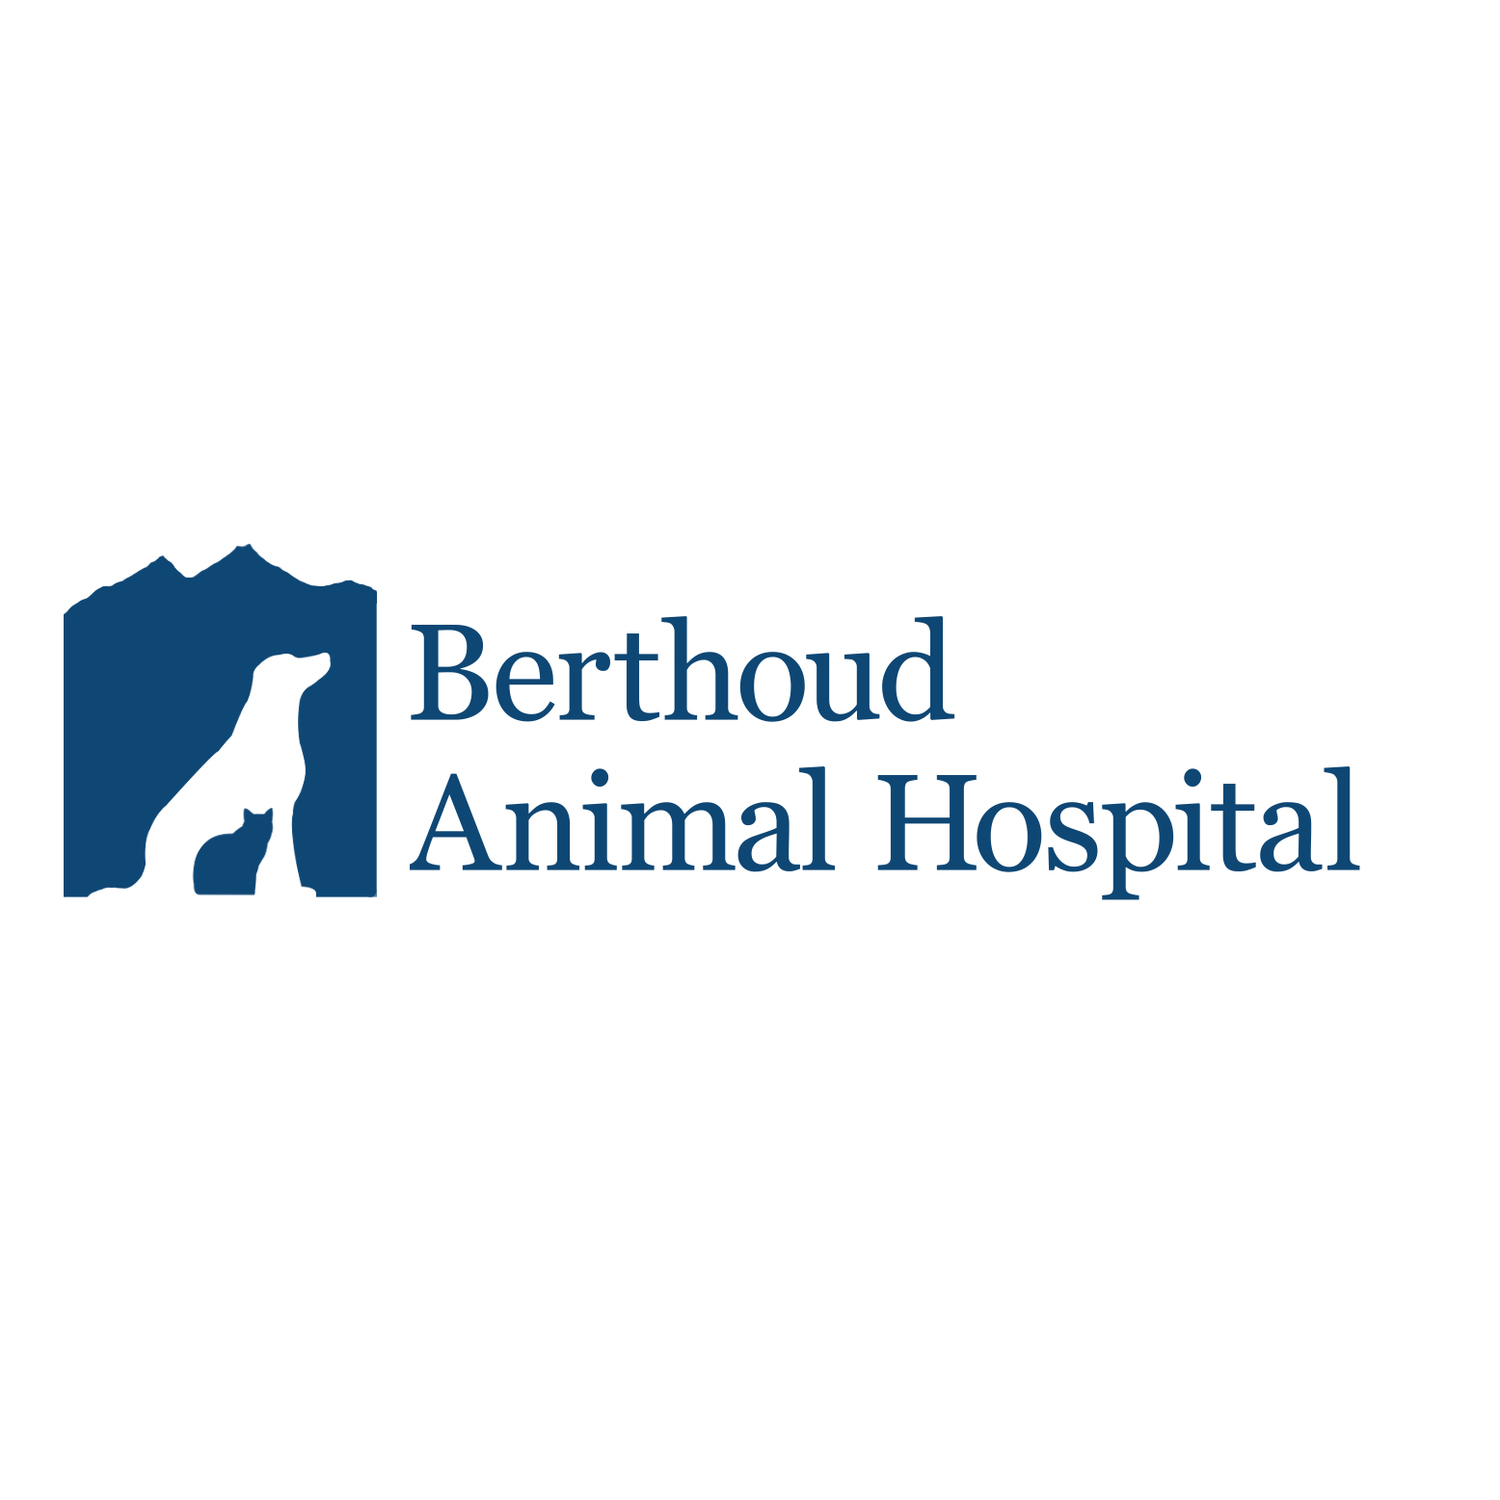 Berthoud Animal Hospital